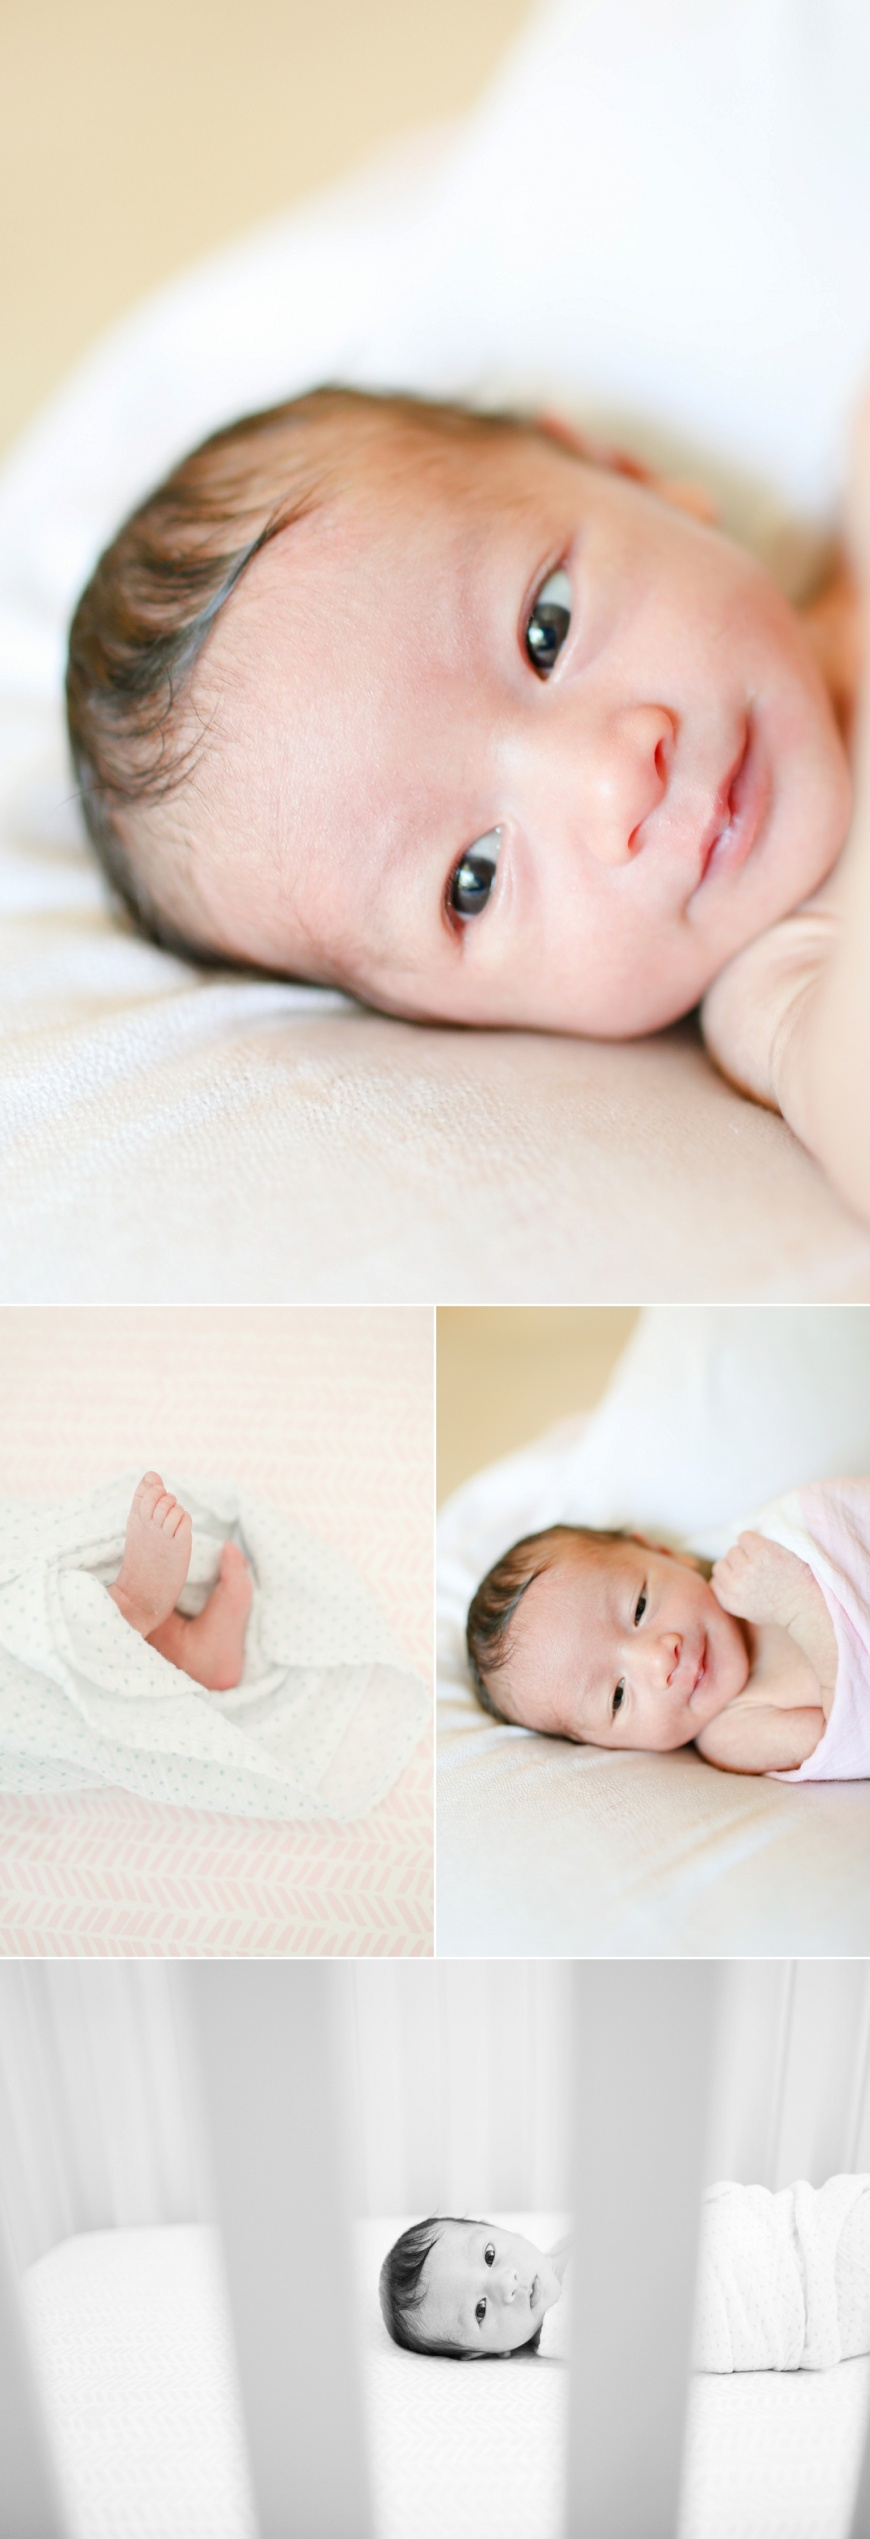 Menlo-Park-Newborn-Photographer_1002.jpg